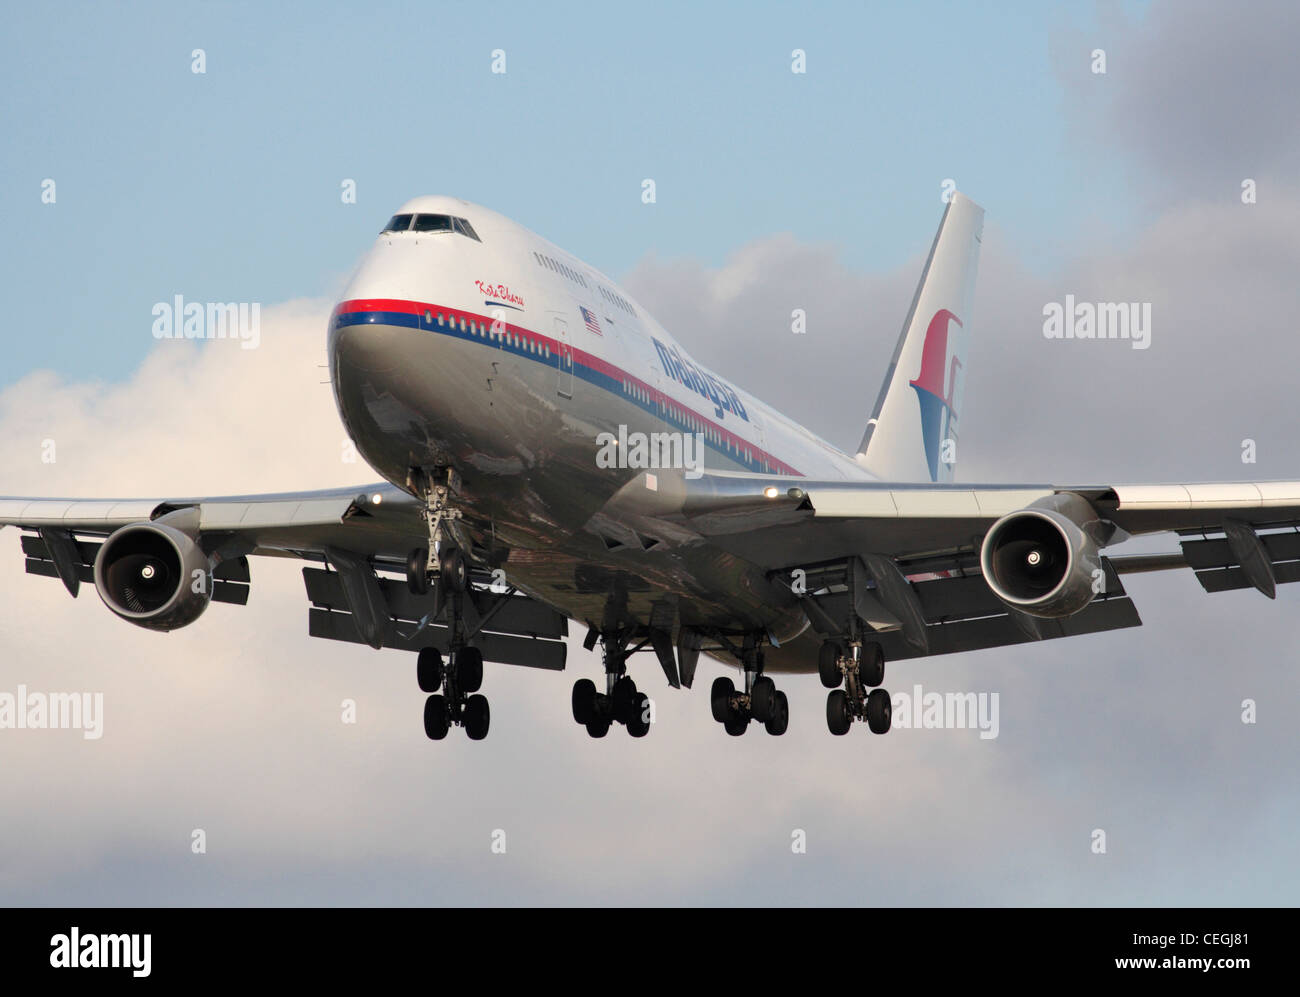 Malaysia Airlines Boeing 747-400 jumbo jet on arrival. Close up front view. - Stock Image